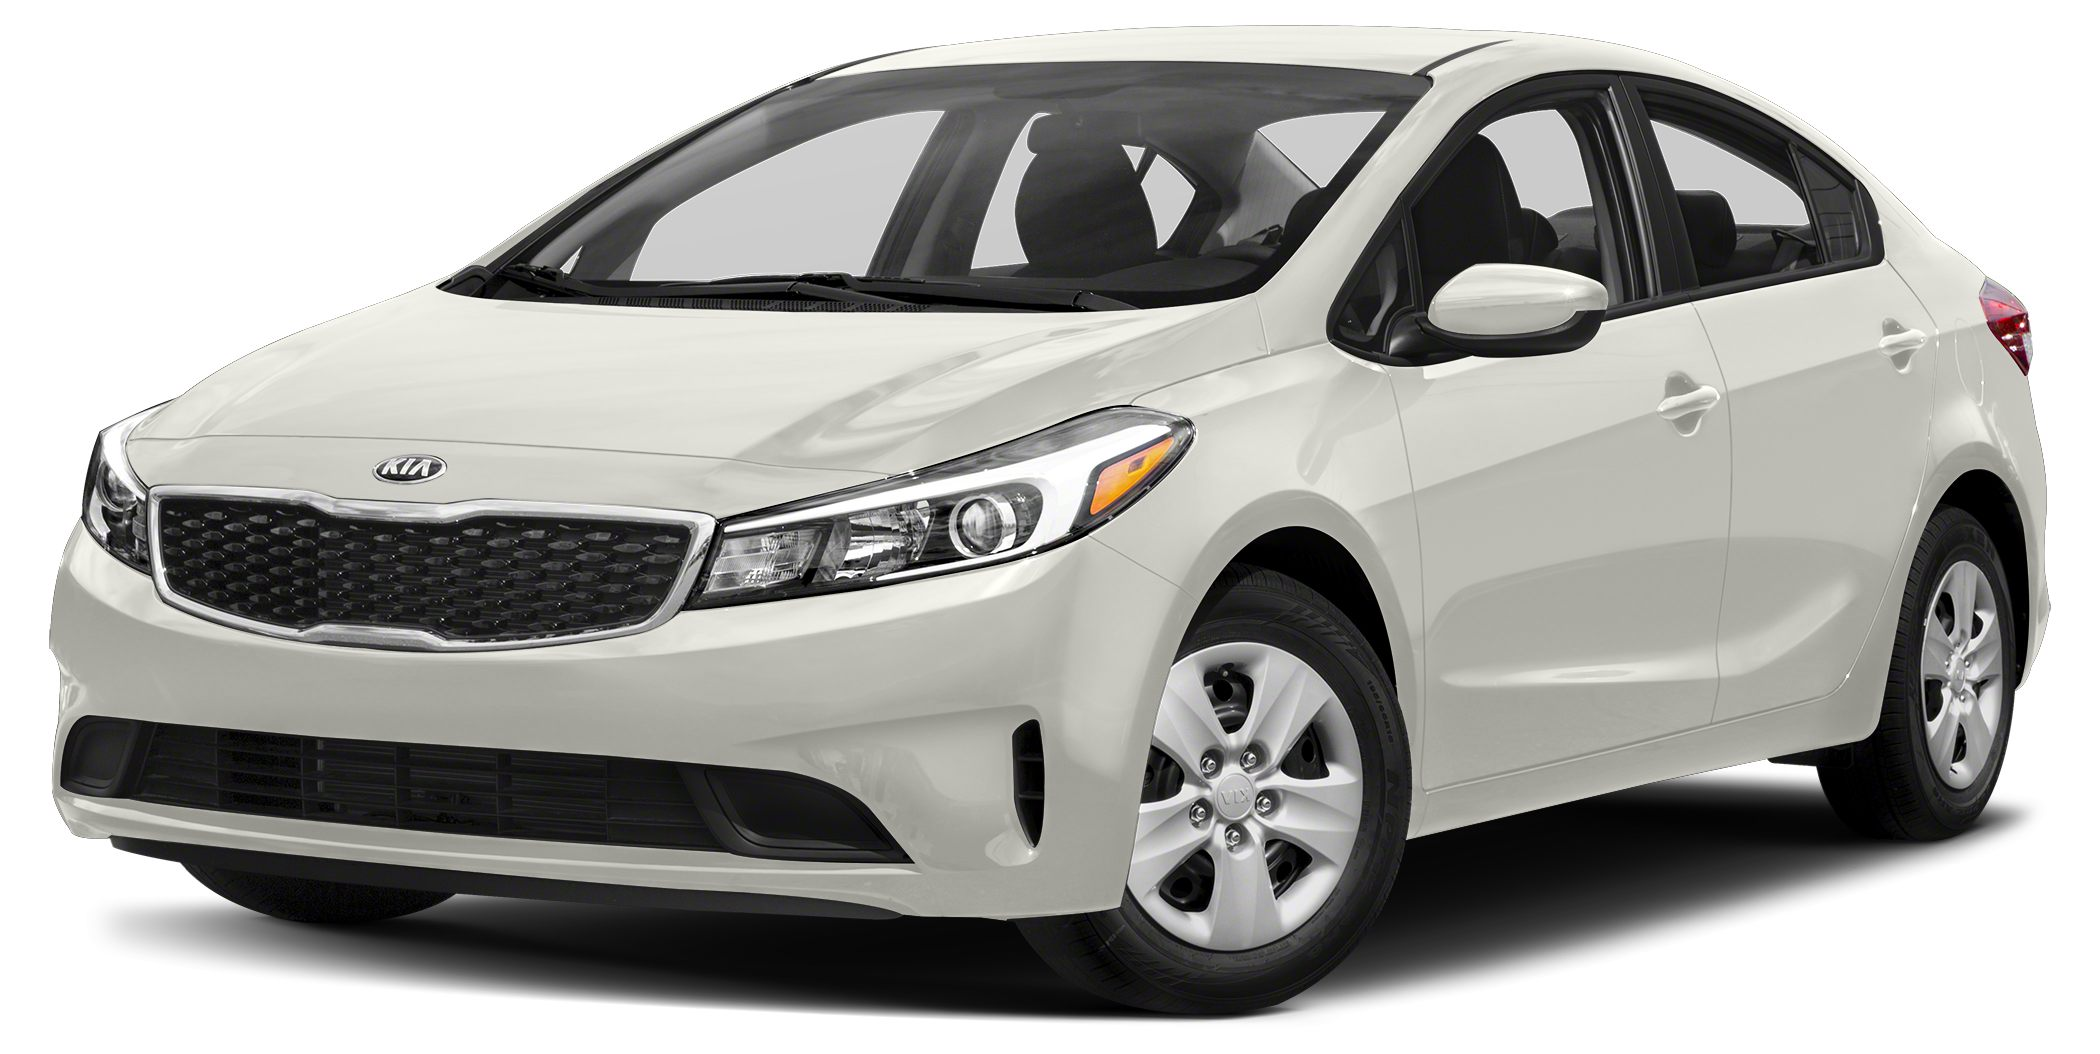 2017 Kia Forte EX The Kia Forte is peppy economical and surprisingly loaded with tech features